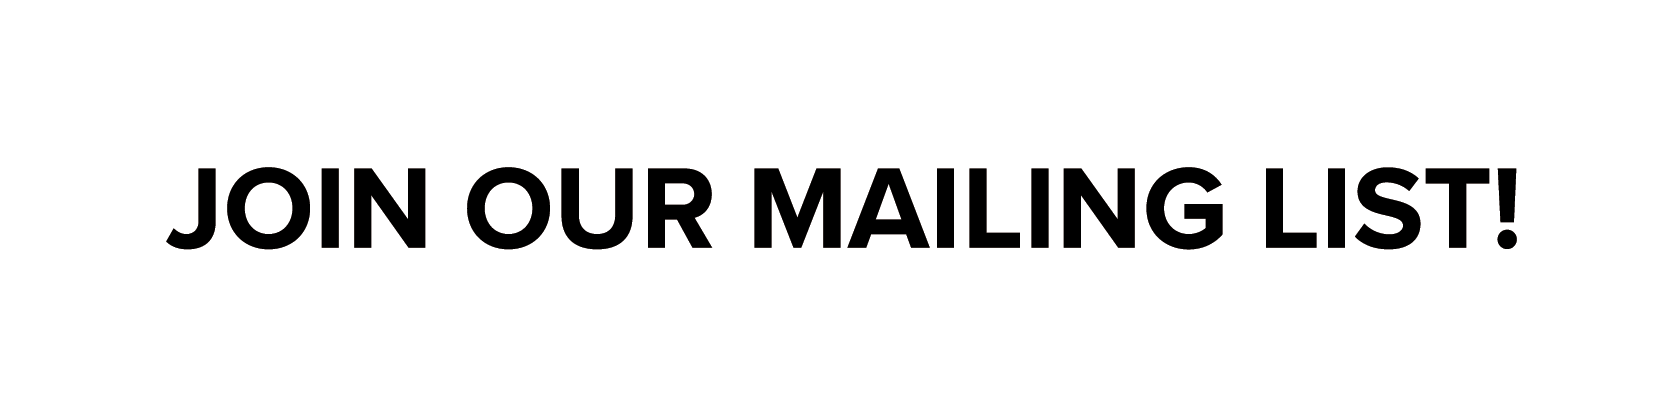 Join our mailing list buttom.png